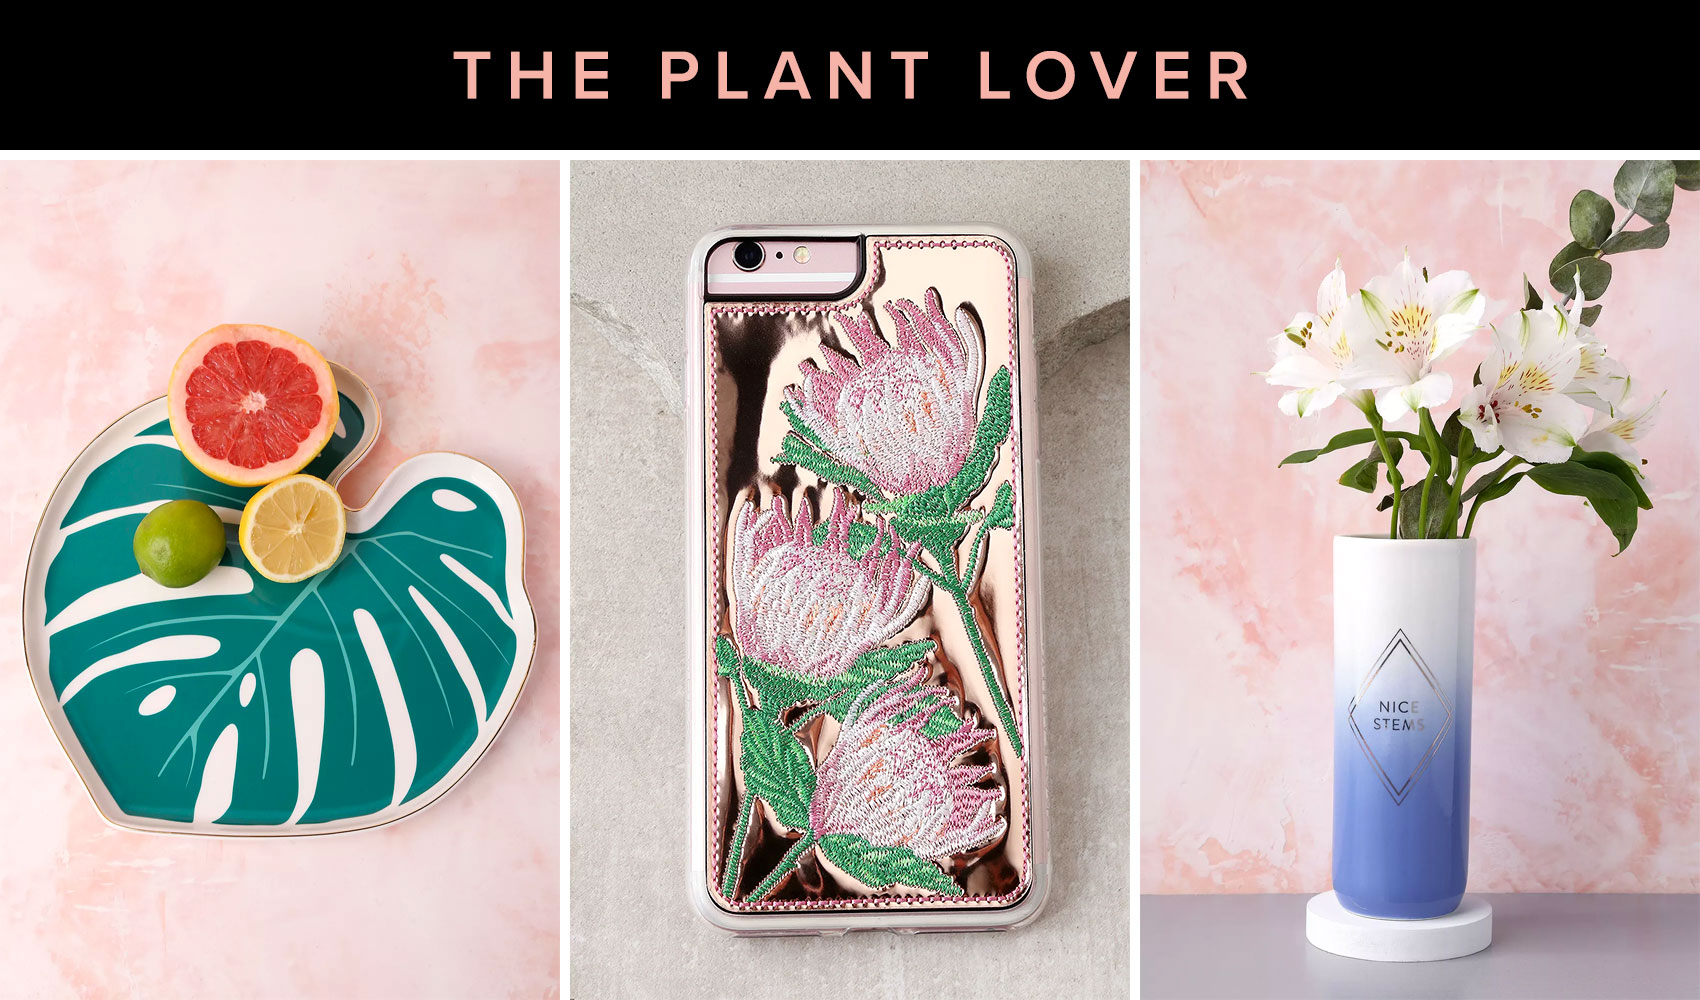 The Plant Lover